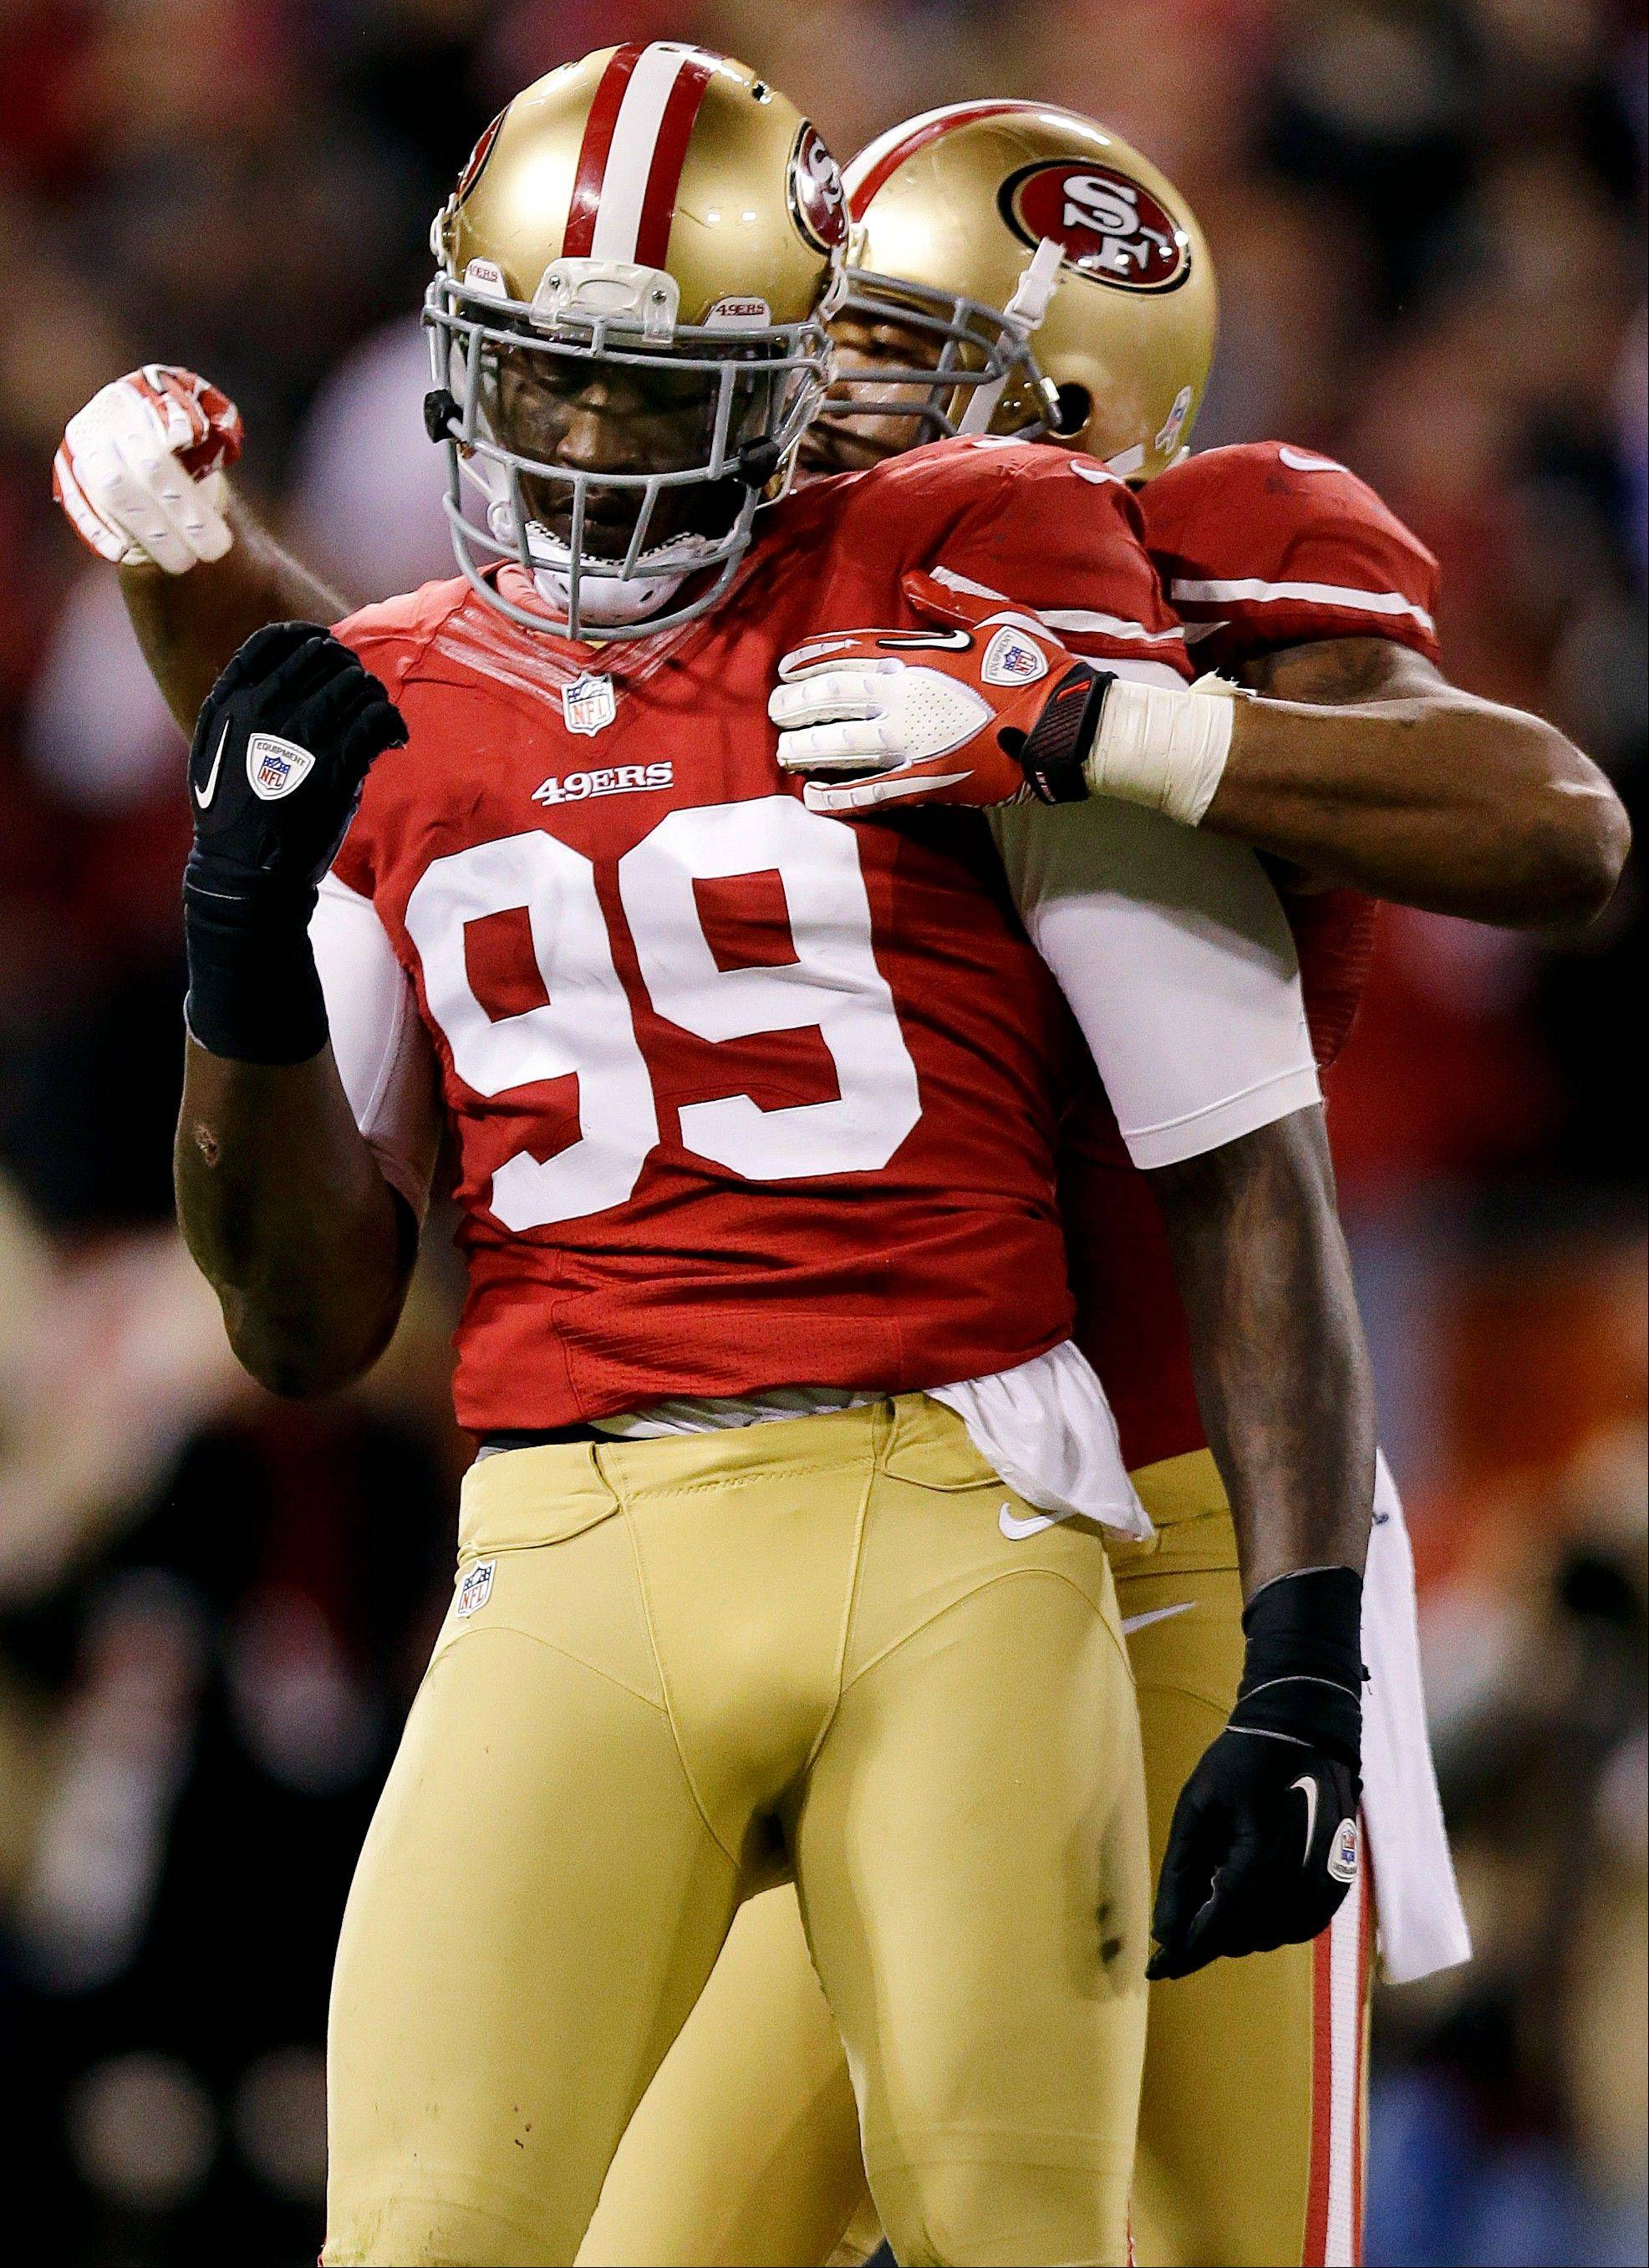 San Francisco 49ers linebacker Aldon Smith is congratulated by linebacker Ahmad Brooks after sacking Chicago Bears quarterback Jason Campbell during the third quarter.